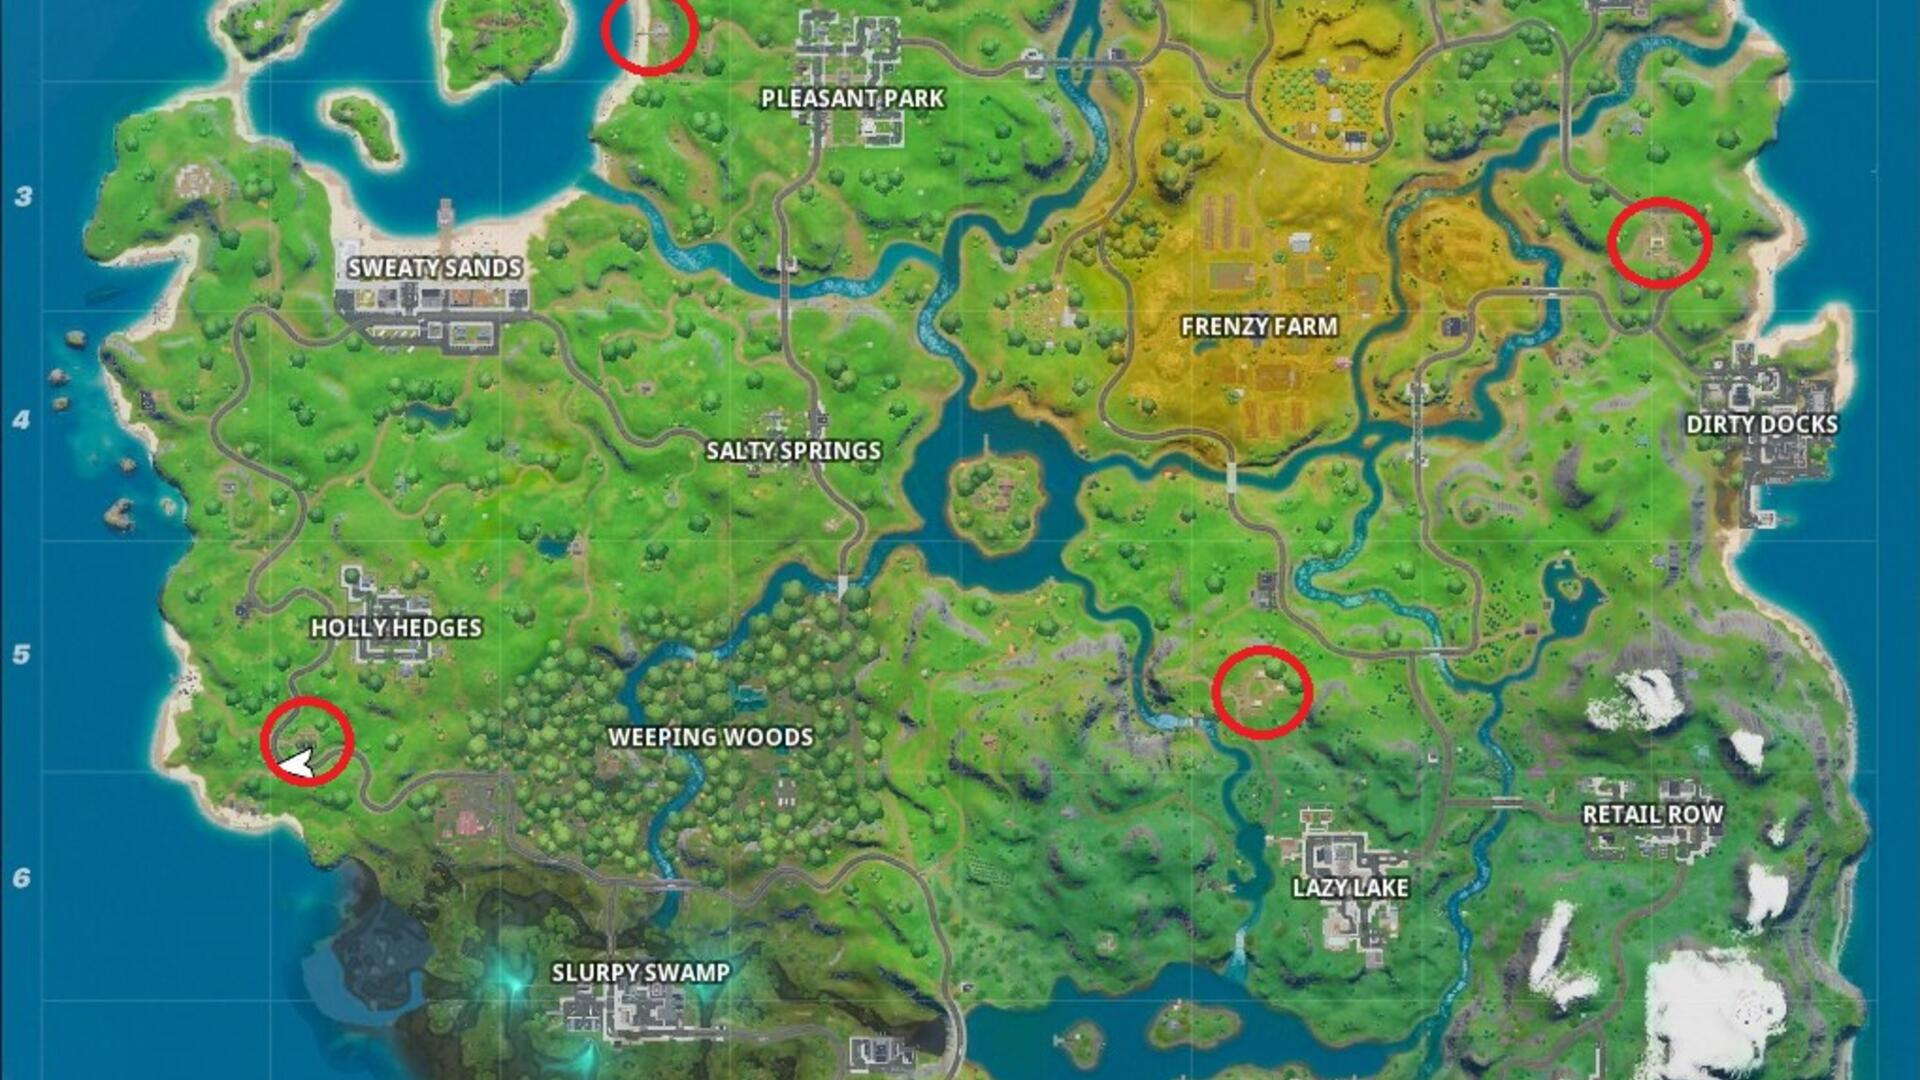 Fortnite E.G.O. Outpost Locations - Where to Find All the Ego Fortnite Outposts